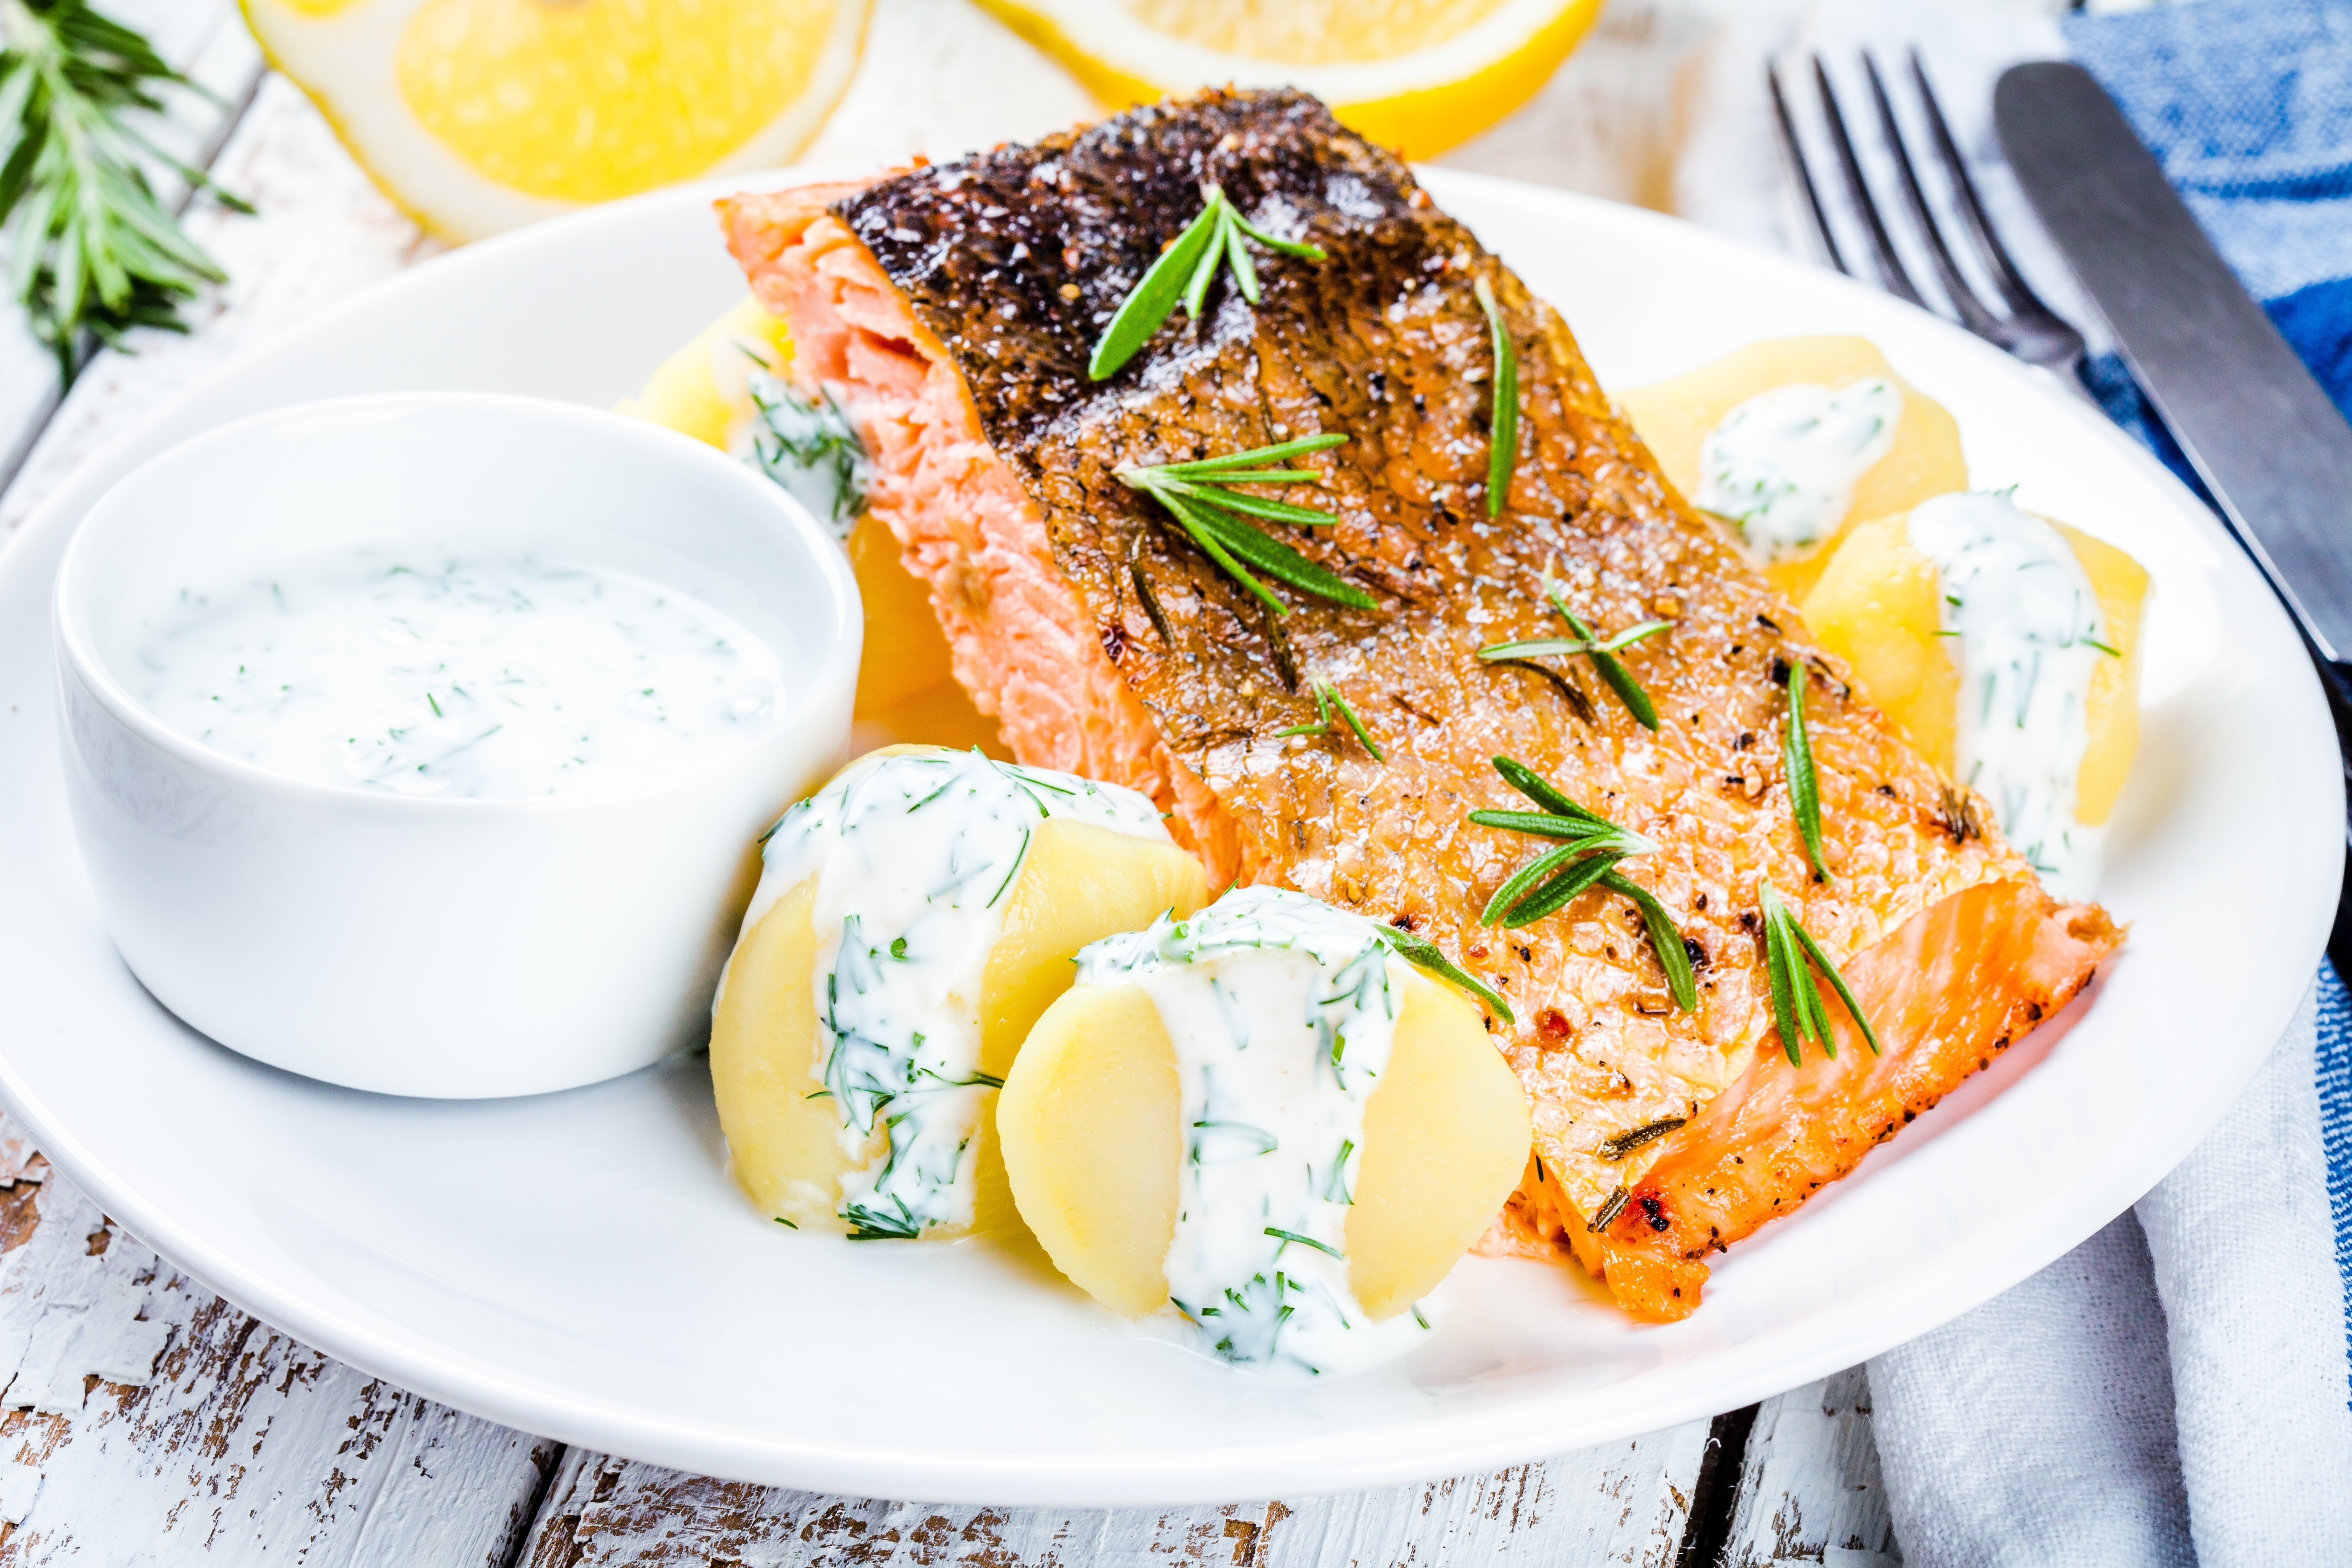 Griddled Salmon with Dill Sauce